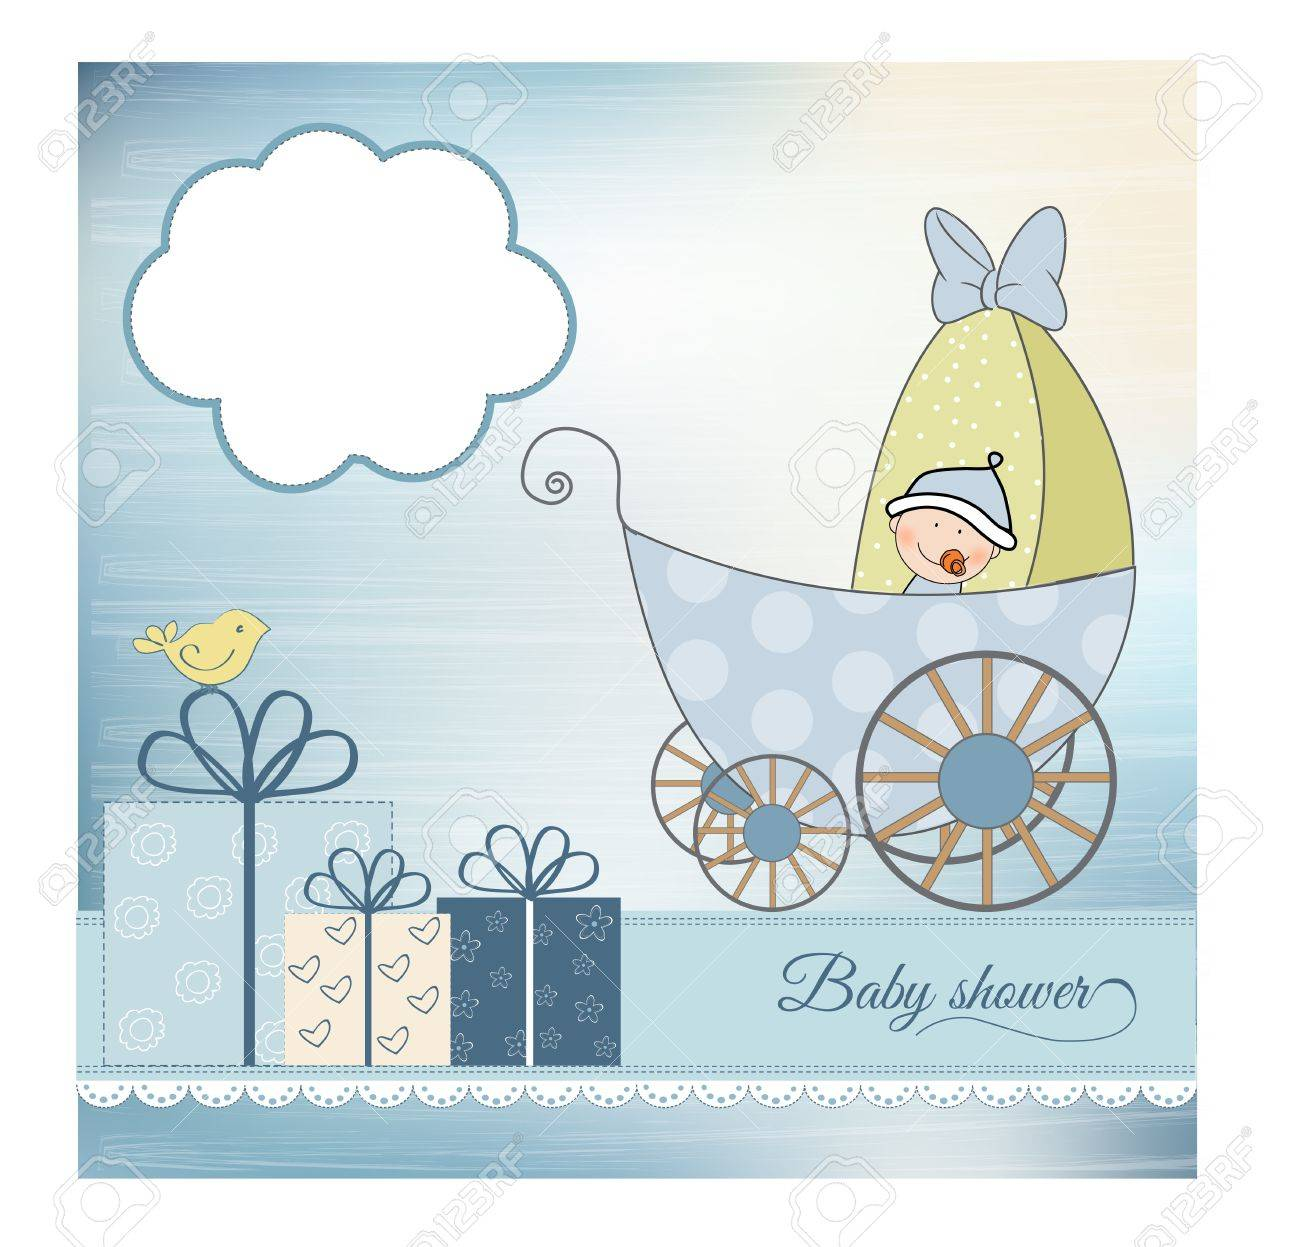 baby shower announcement card with pram - 9934264